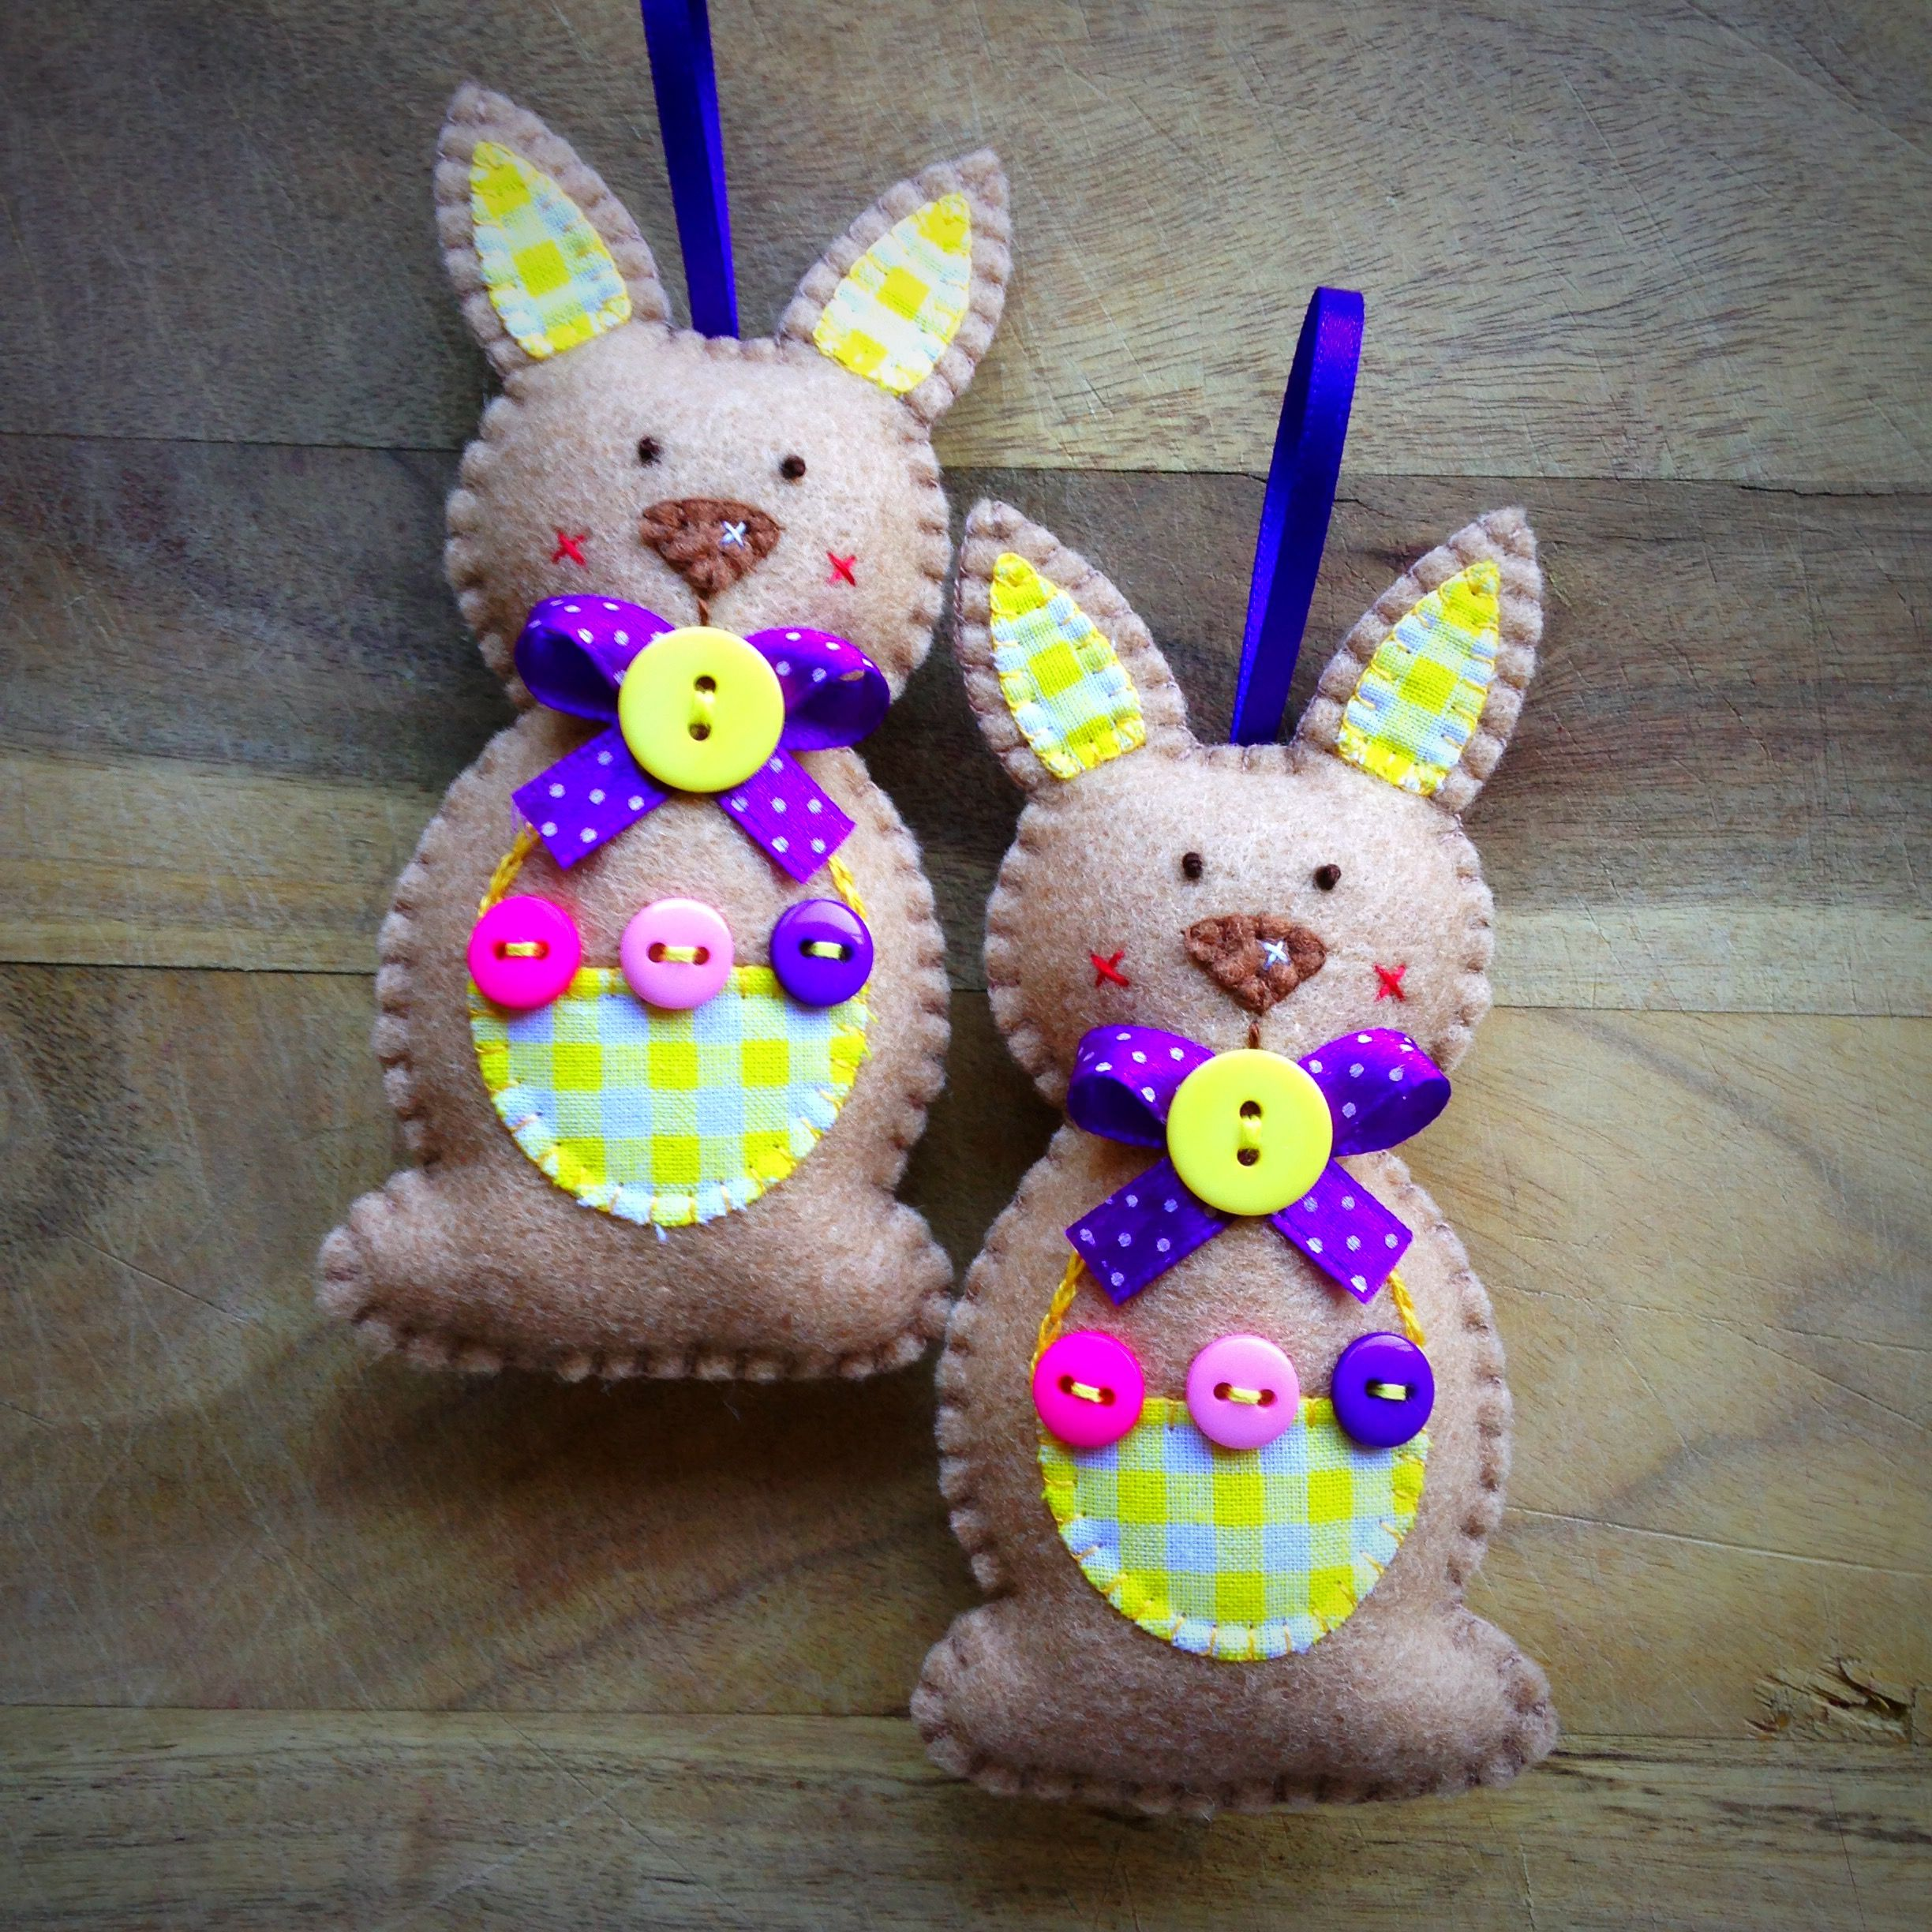 Hand stitched Felt Easter Bunnies